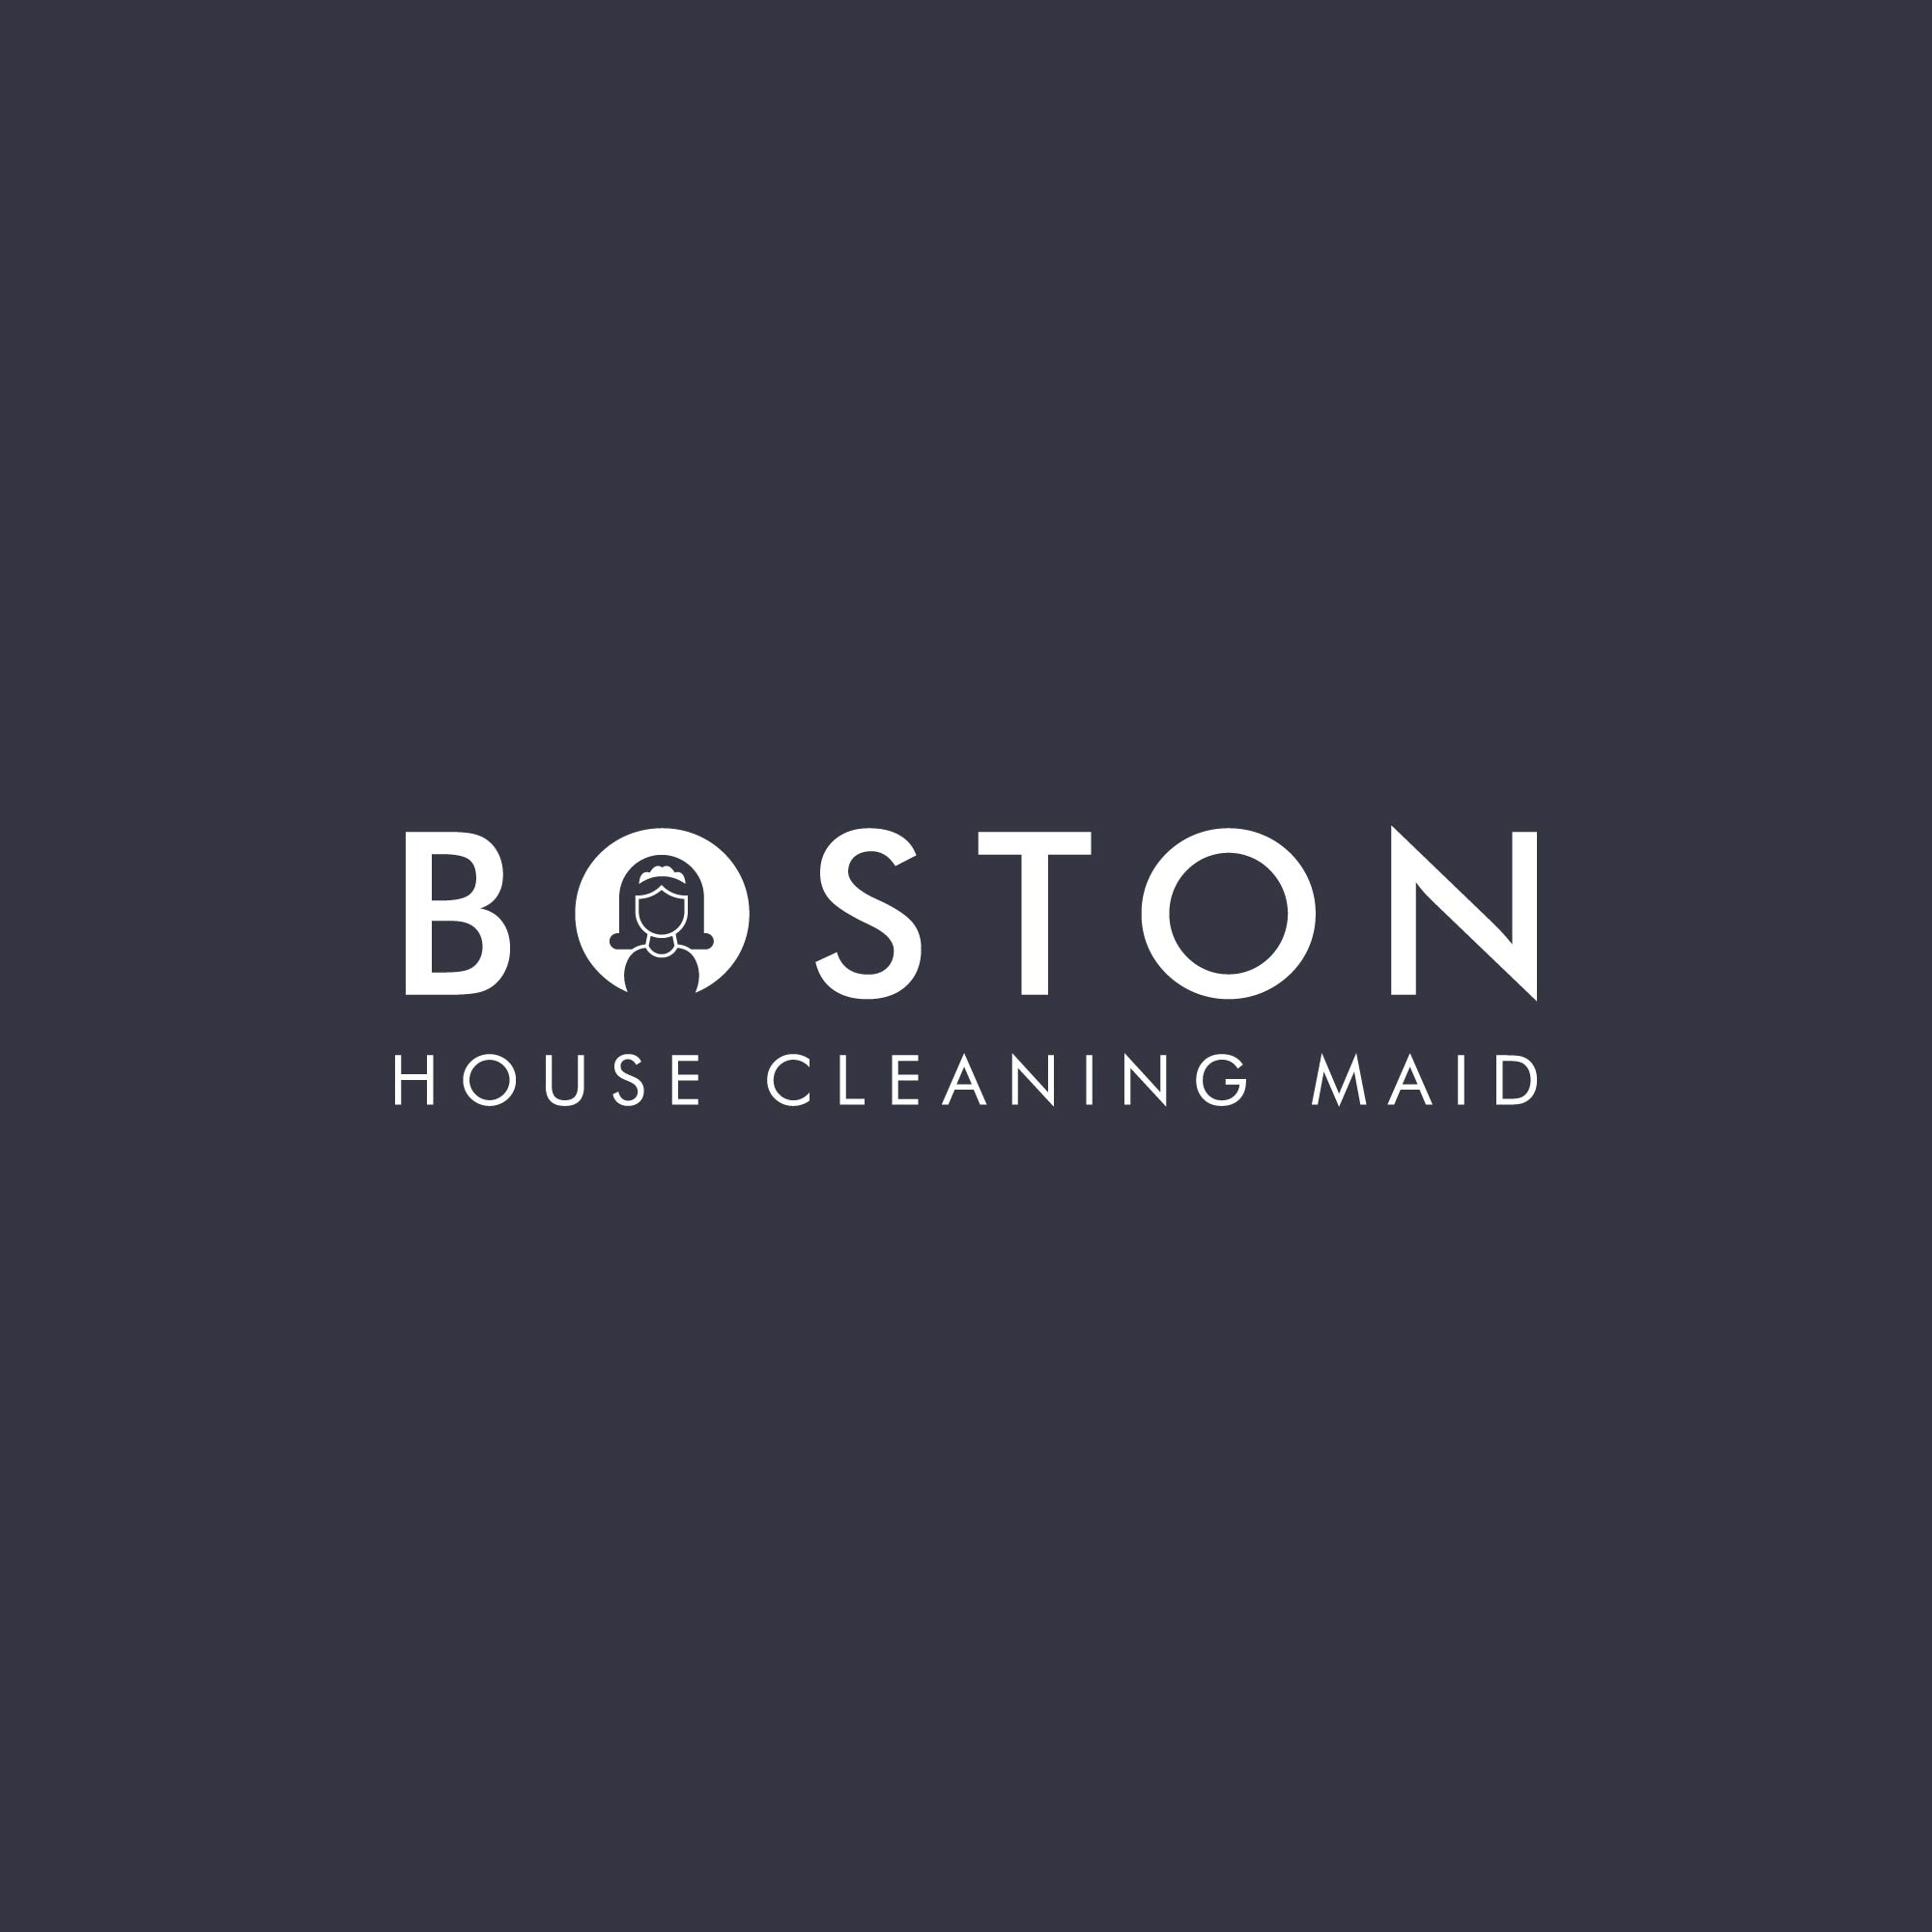 Boston House Cleaning Maid Cleaning Services